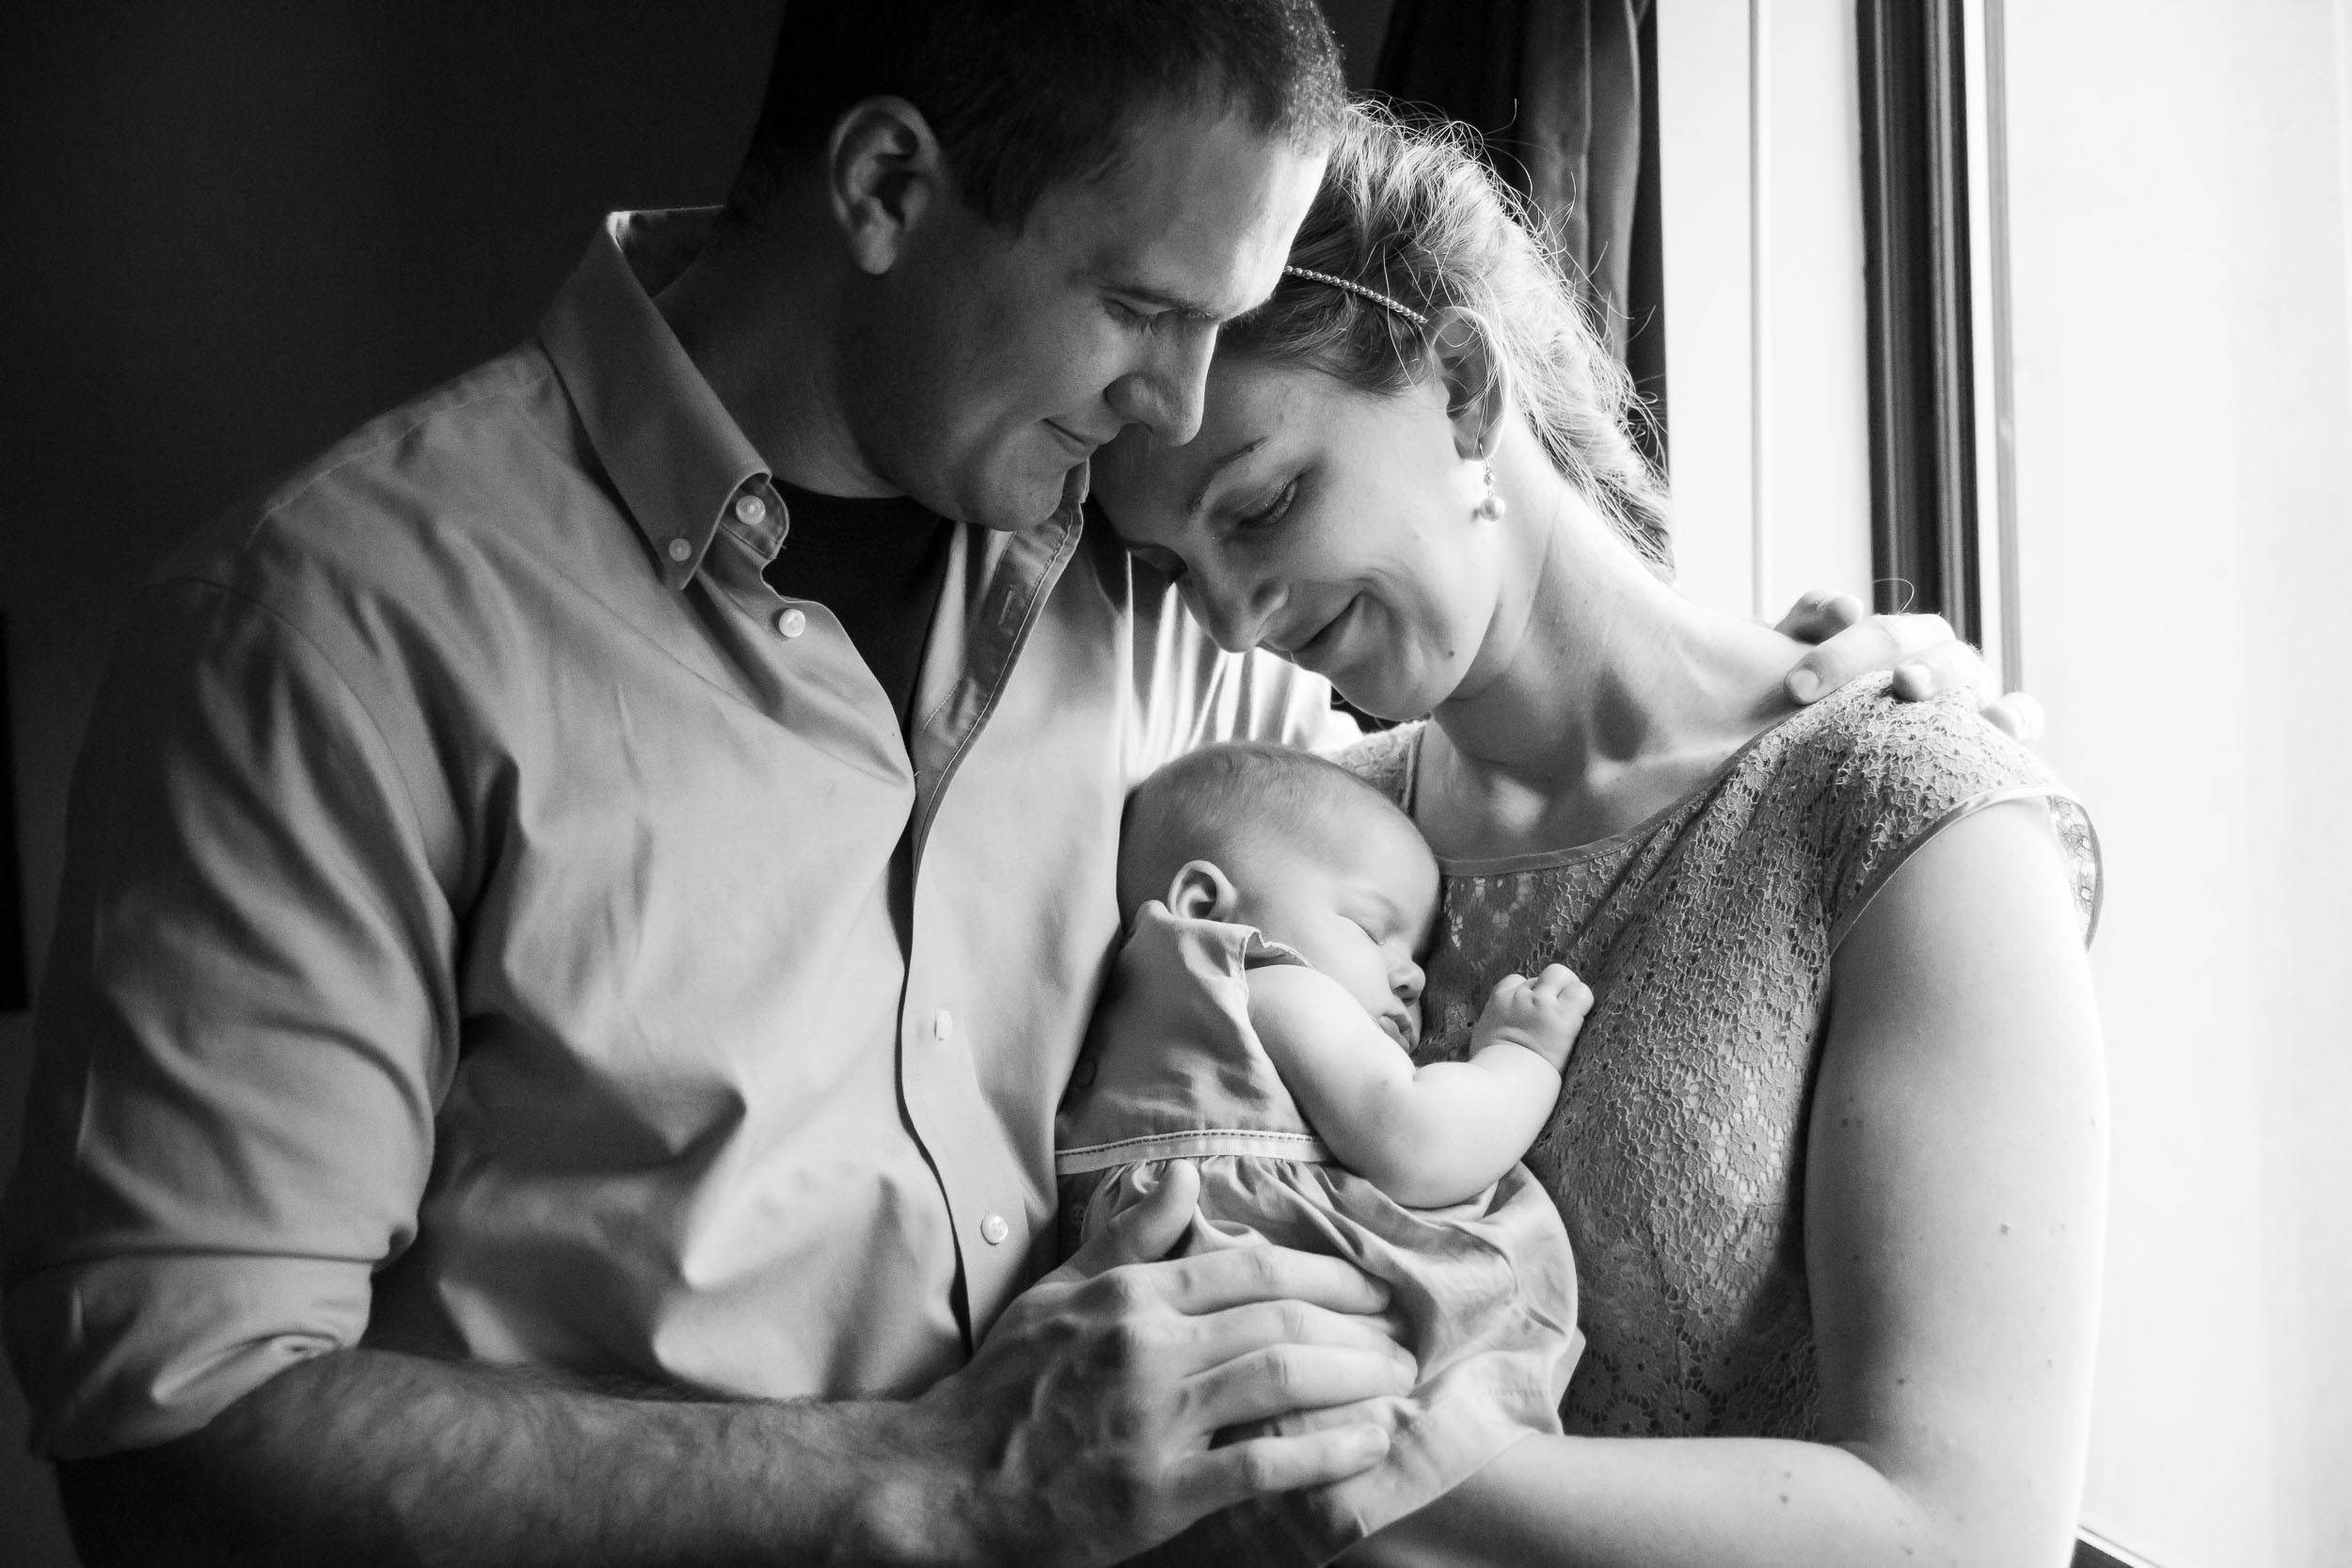 Seattle Family Photographer   By G. Lin Photography   Black and white image of parents holding baby